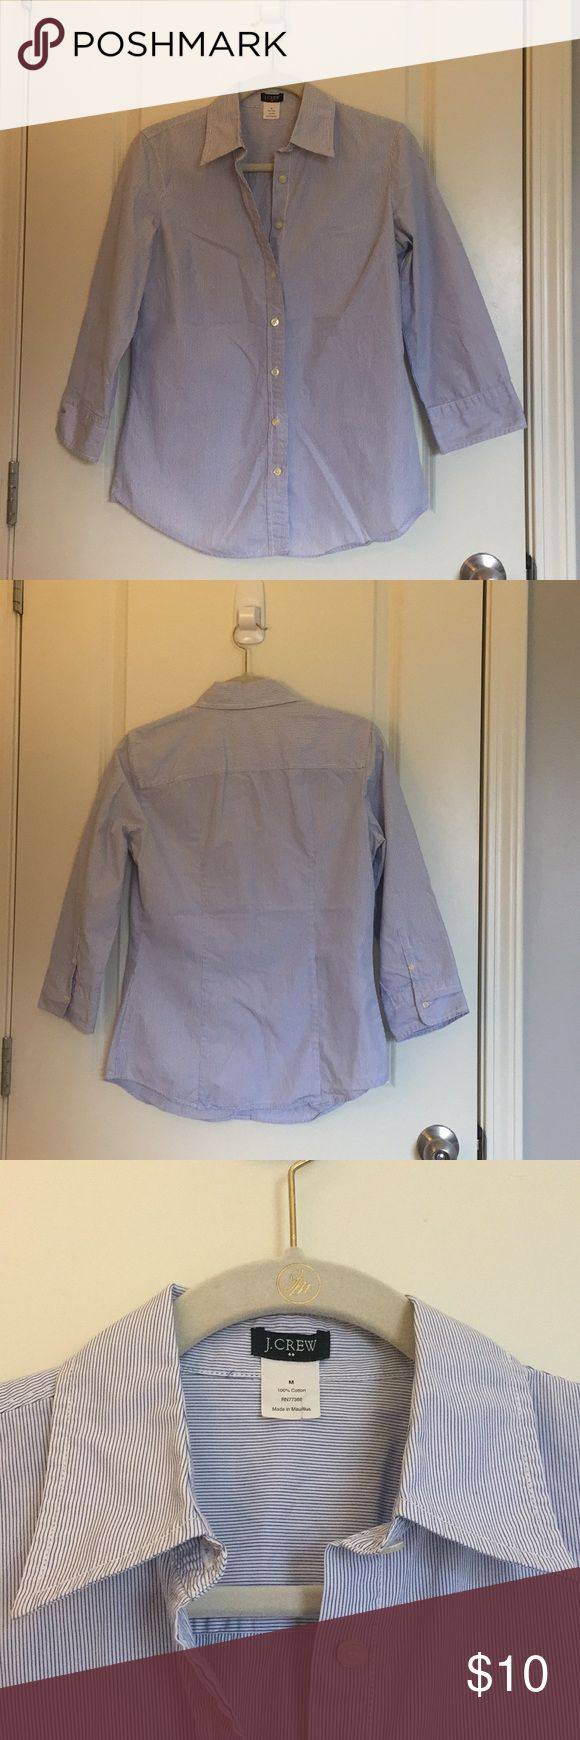 J. Crew Women's 3/4 sleeve blue-striped oxford (M) Classic, 100% cotton shirt great for work or play. EUC! J. Crew Tops Button Down Shirts